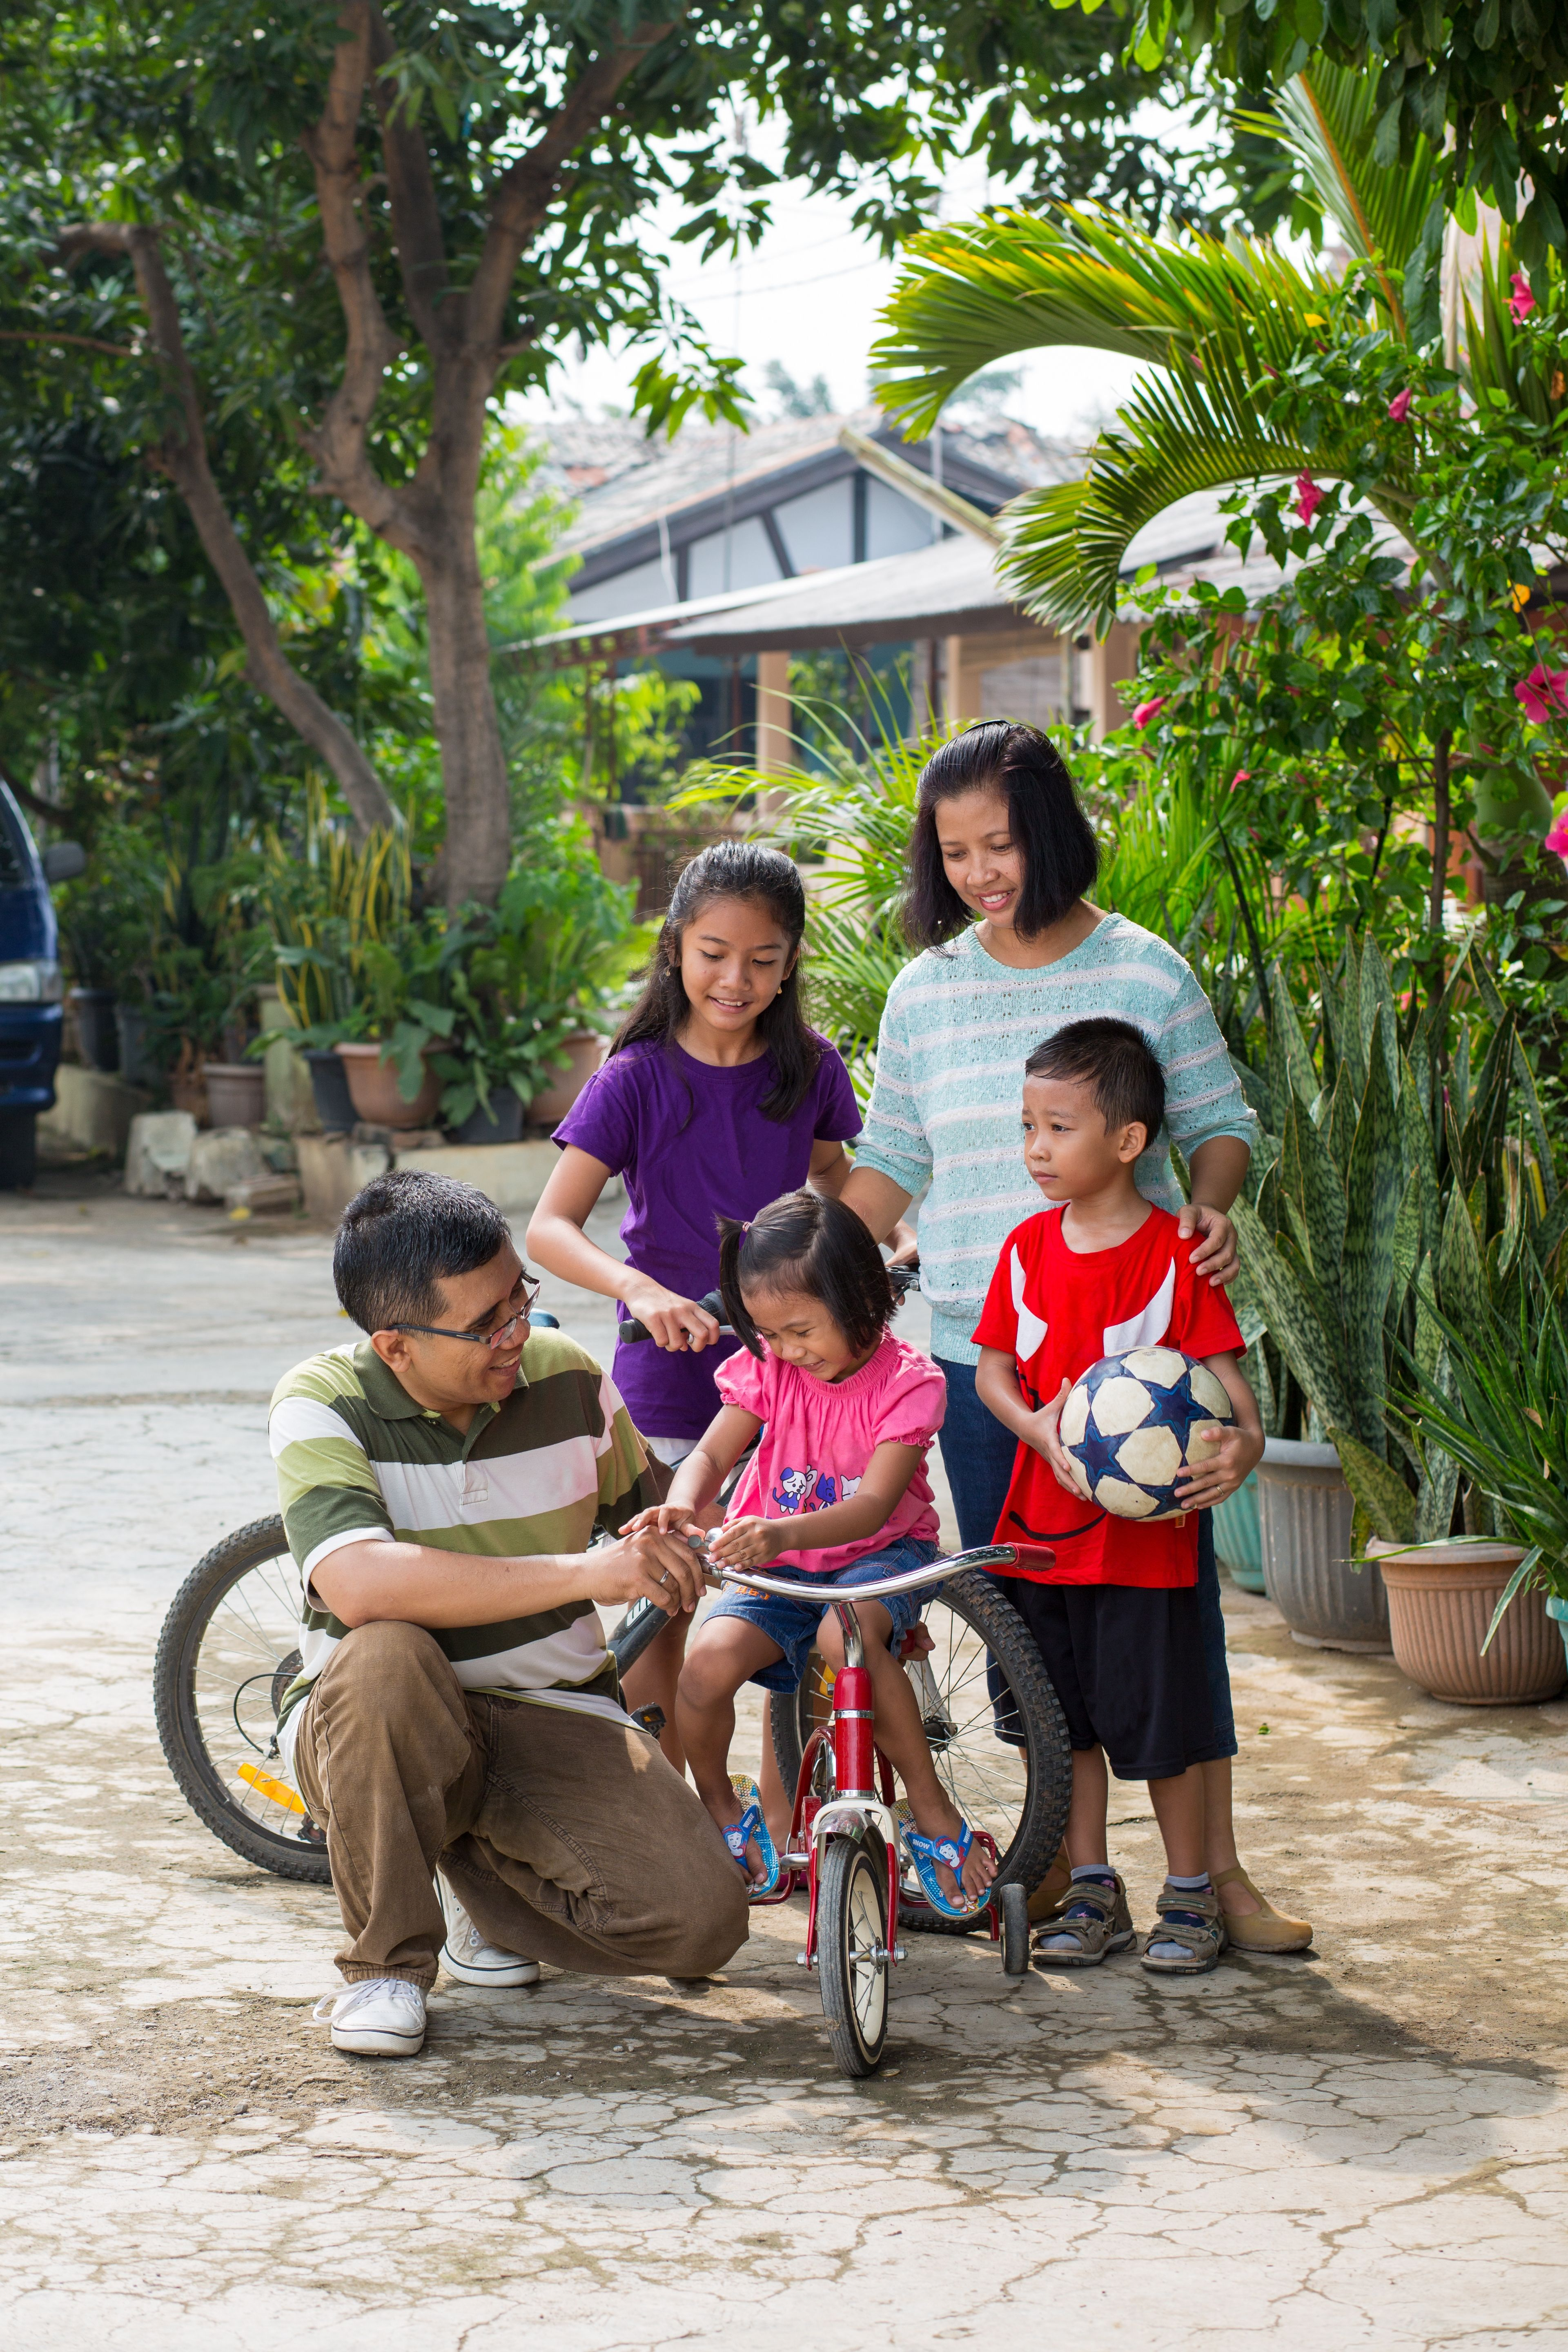 A family preparing to ride bikes together.